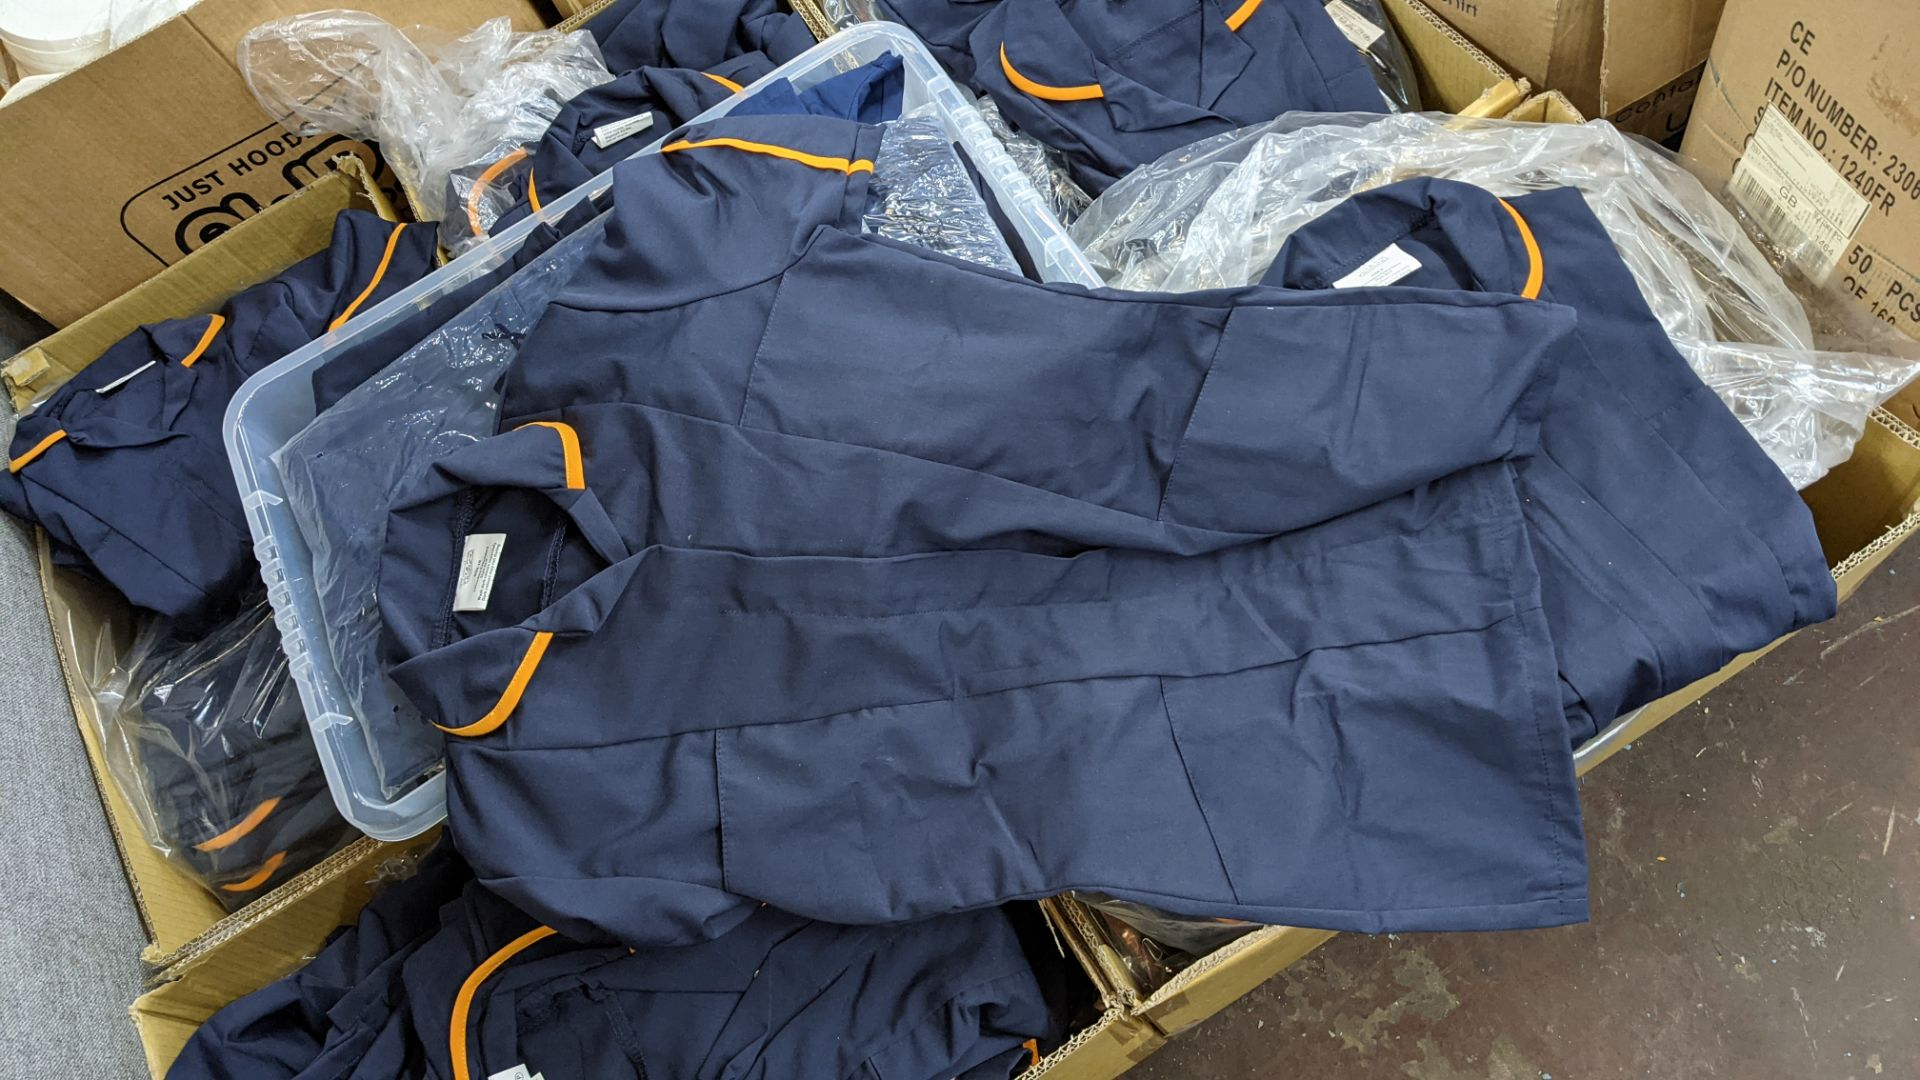 The contents of a pallet of short sleeve zip up navy tops with white or orange collars - this lot co - Image 5 of 6